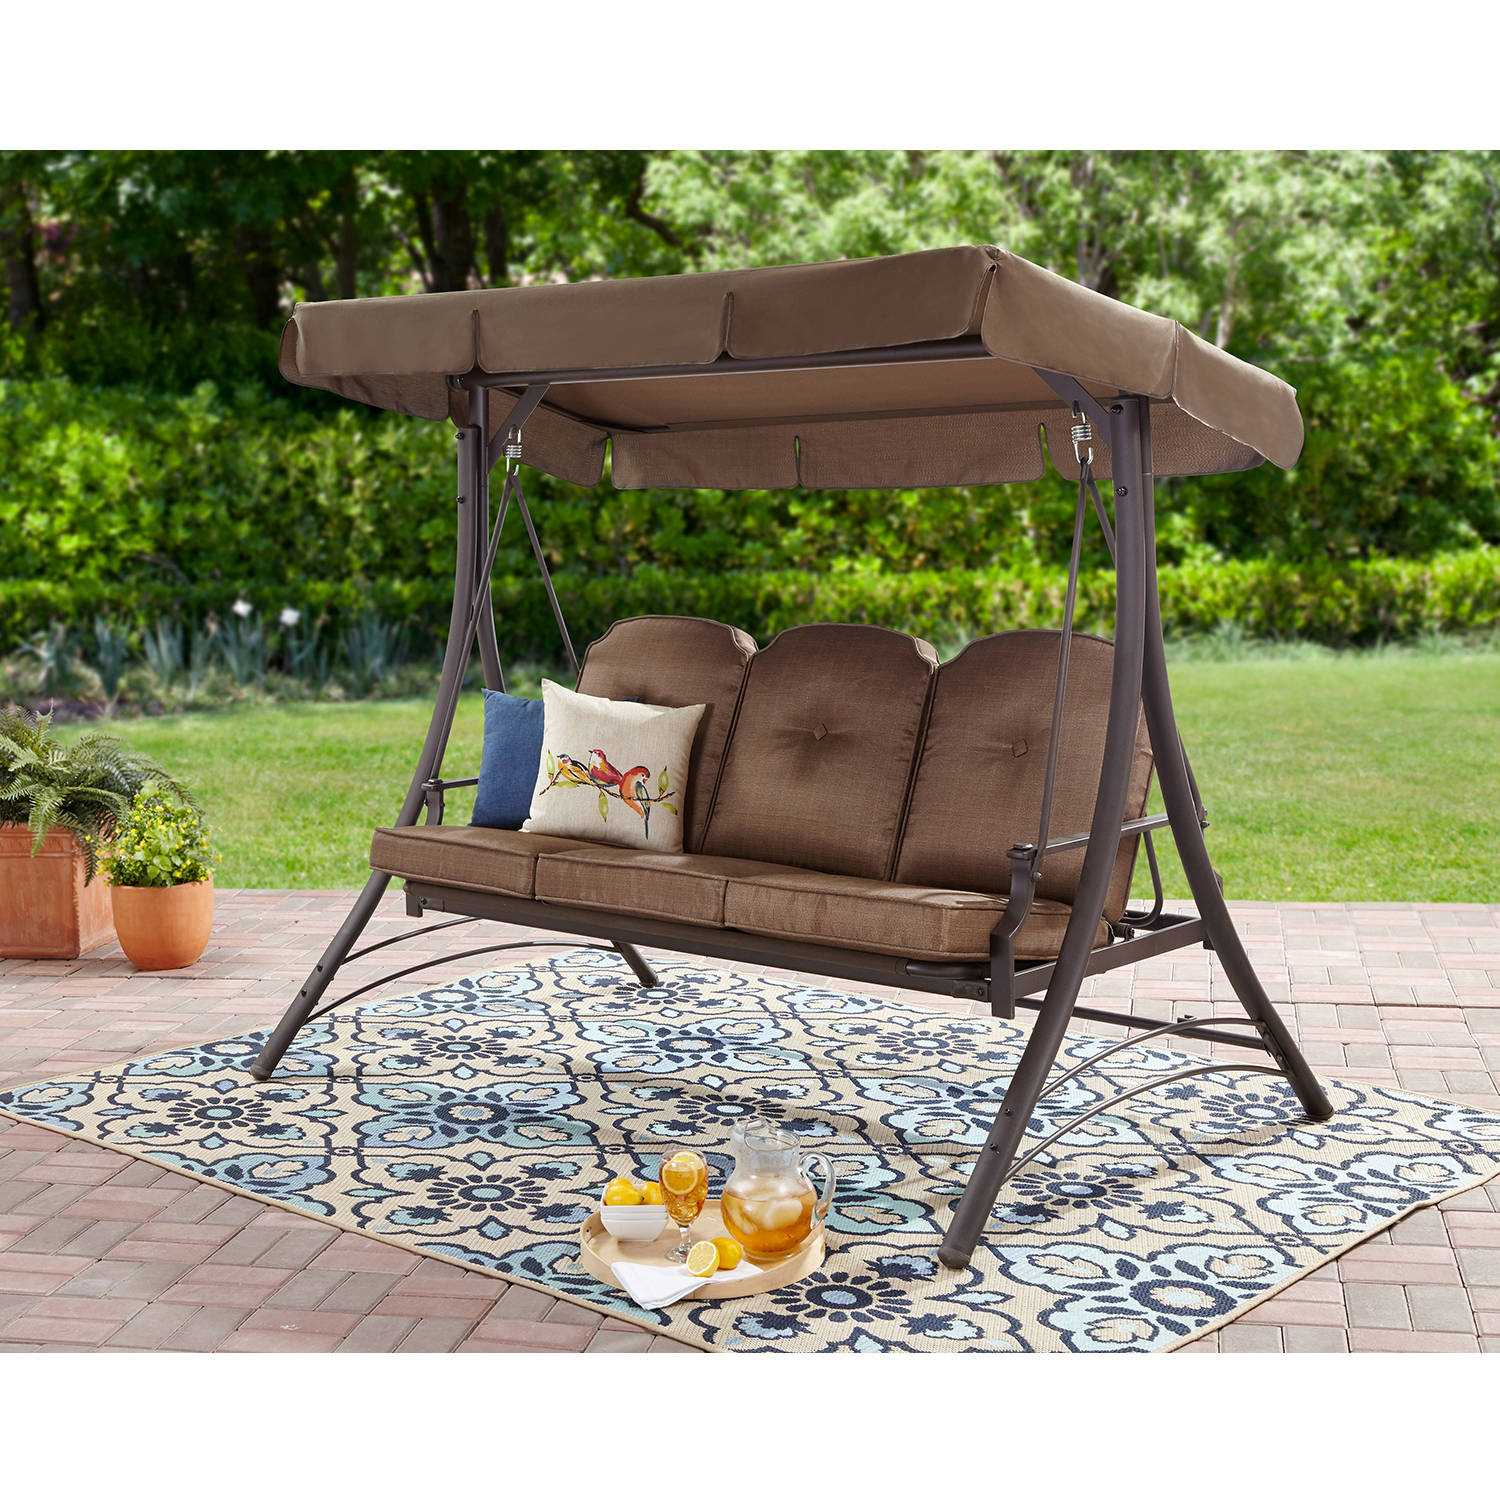 Deals & Coupons | Get Mainstays Wentworth 3 Person Cushioned Inside 3 Person Brown Steel Outdoor Swings (View 11 of 25)